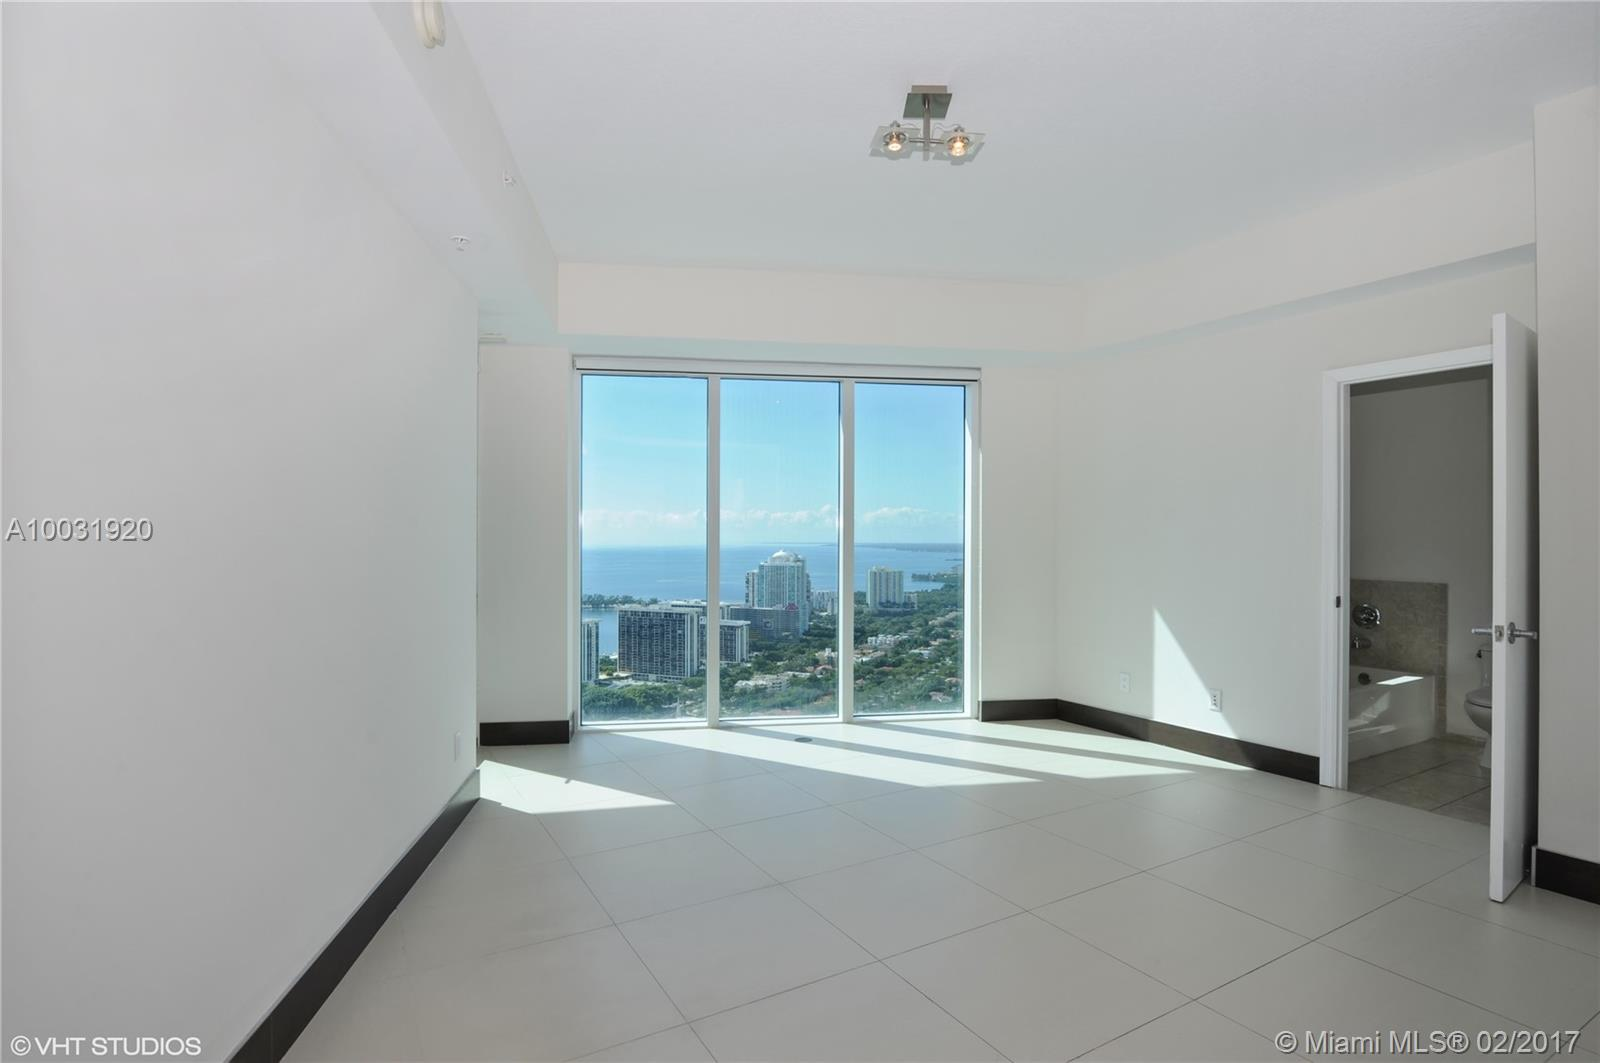 Infinity at Brickell